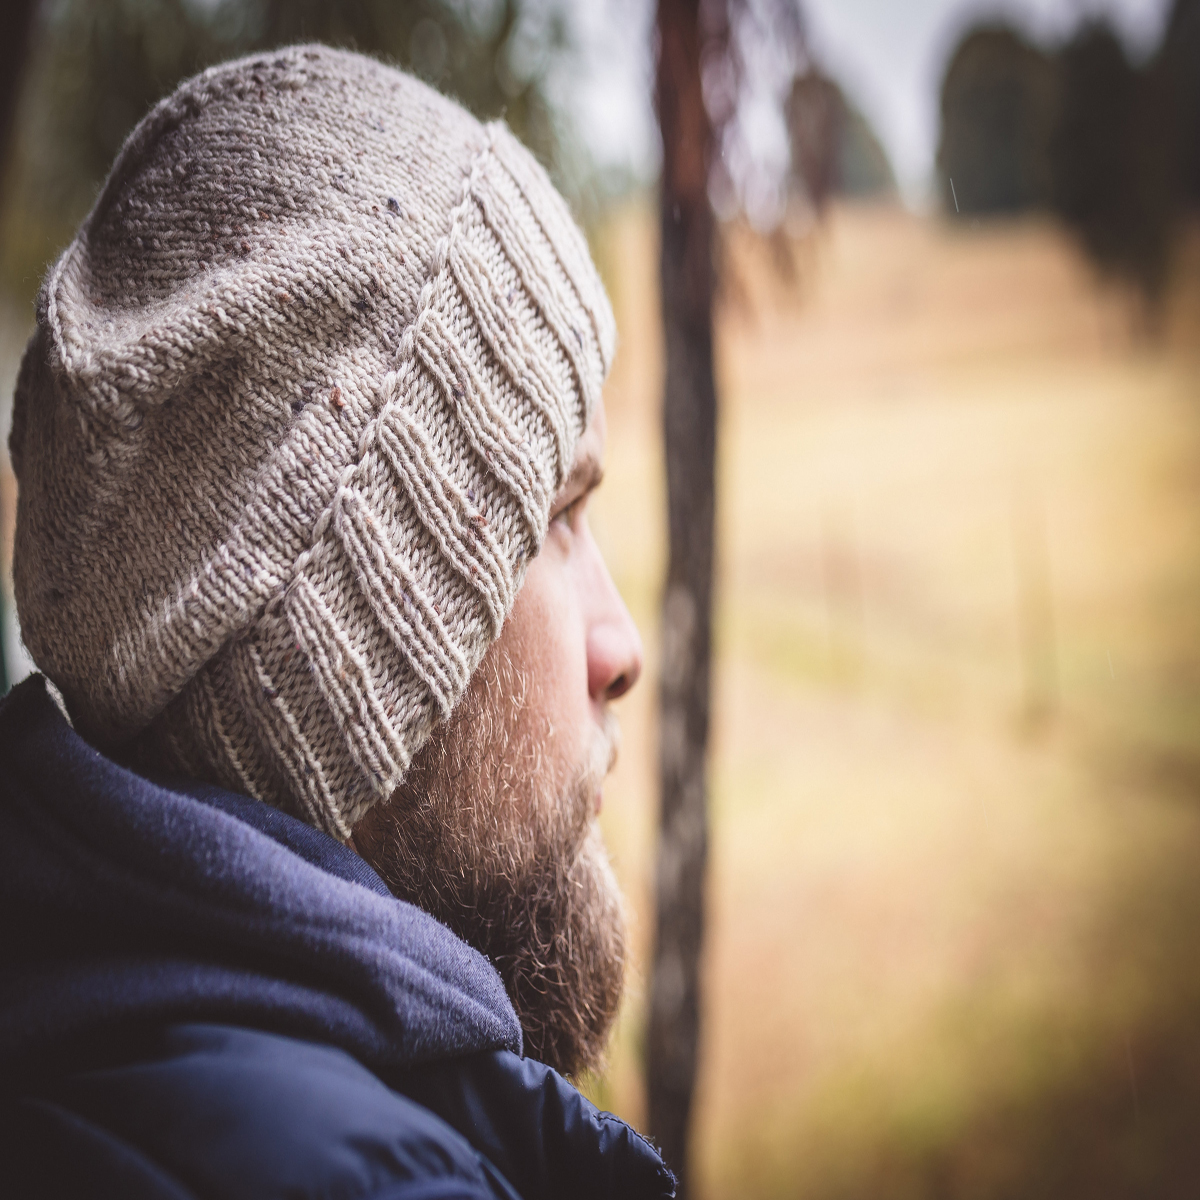 Men Speckled Oatmeal Wool Knit Beanie With Foldable Brim By SiennaKnits